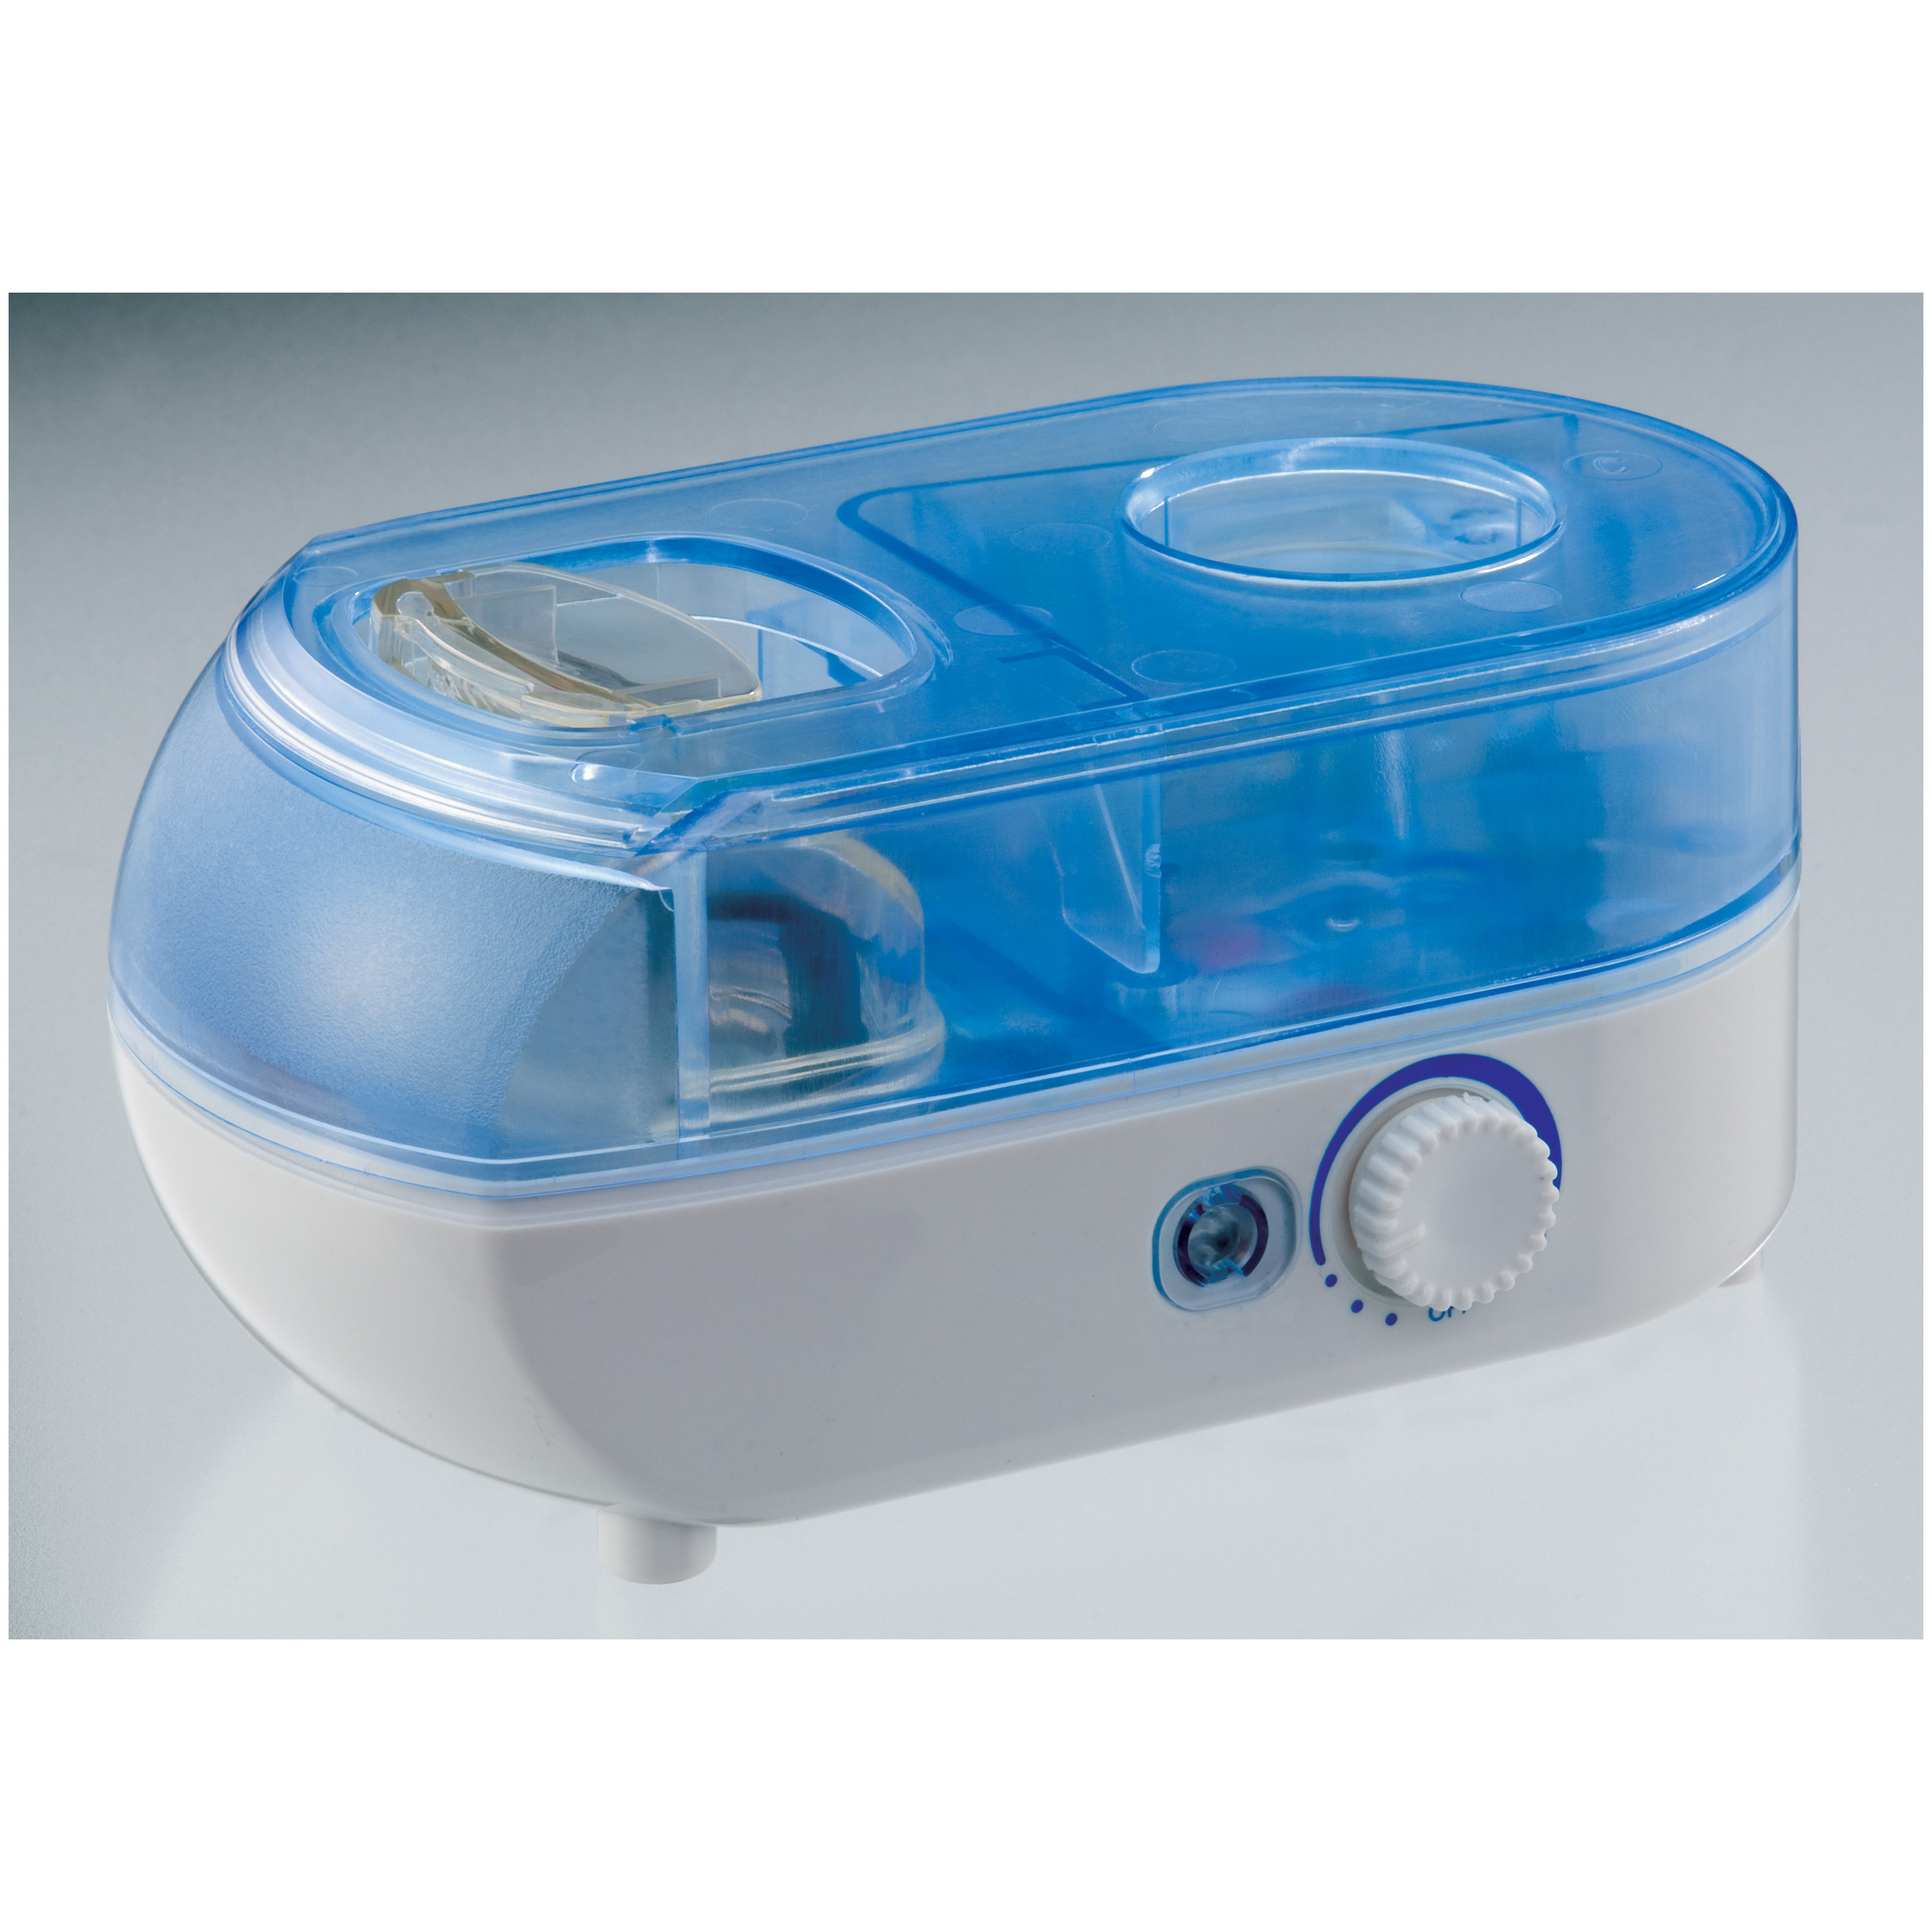 "SPT Personal Humidifier with ION mellows-out the rough, desert-dry air with a soothing, cool mist-anywhere you go! Compact, lightweight portability ensures you'll alway breathe easy, no matter where your travels take you! Small enough to easily fit in yor luggage or carry-on... all you need to obtain at your destination is a bottle of water. Ultrasonic technology offers cool mist and quiet operation while a built-in ionizer purifies the air by removing bacteria, allergens and contaminents.Breathe easier on the road:Adjustable mist Built-in ionizer Uses water bottle instead of water tank 80ml per hour humidity output 7 hrs / 500ml humidity capacity Carrying pouch and 3 bottle adapters included Quiet operation Low power consumption UL listed AC adapter 5 3/4 x 3 x 2 1/2"". Only 12 ozs.! - $64.99"